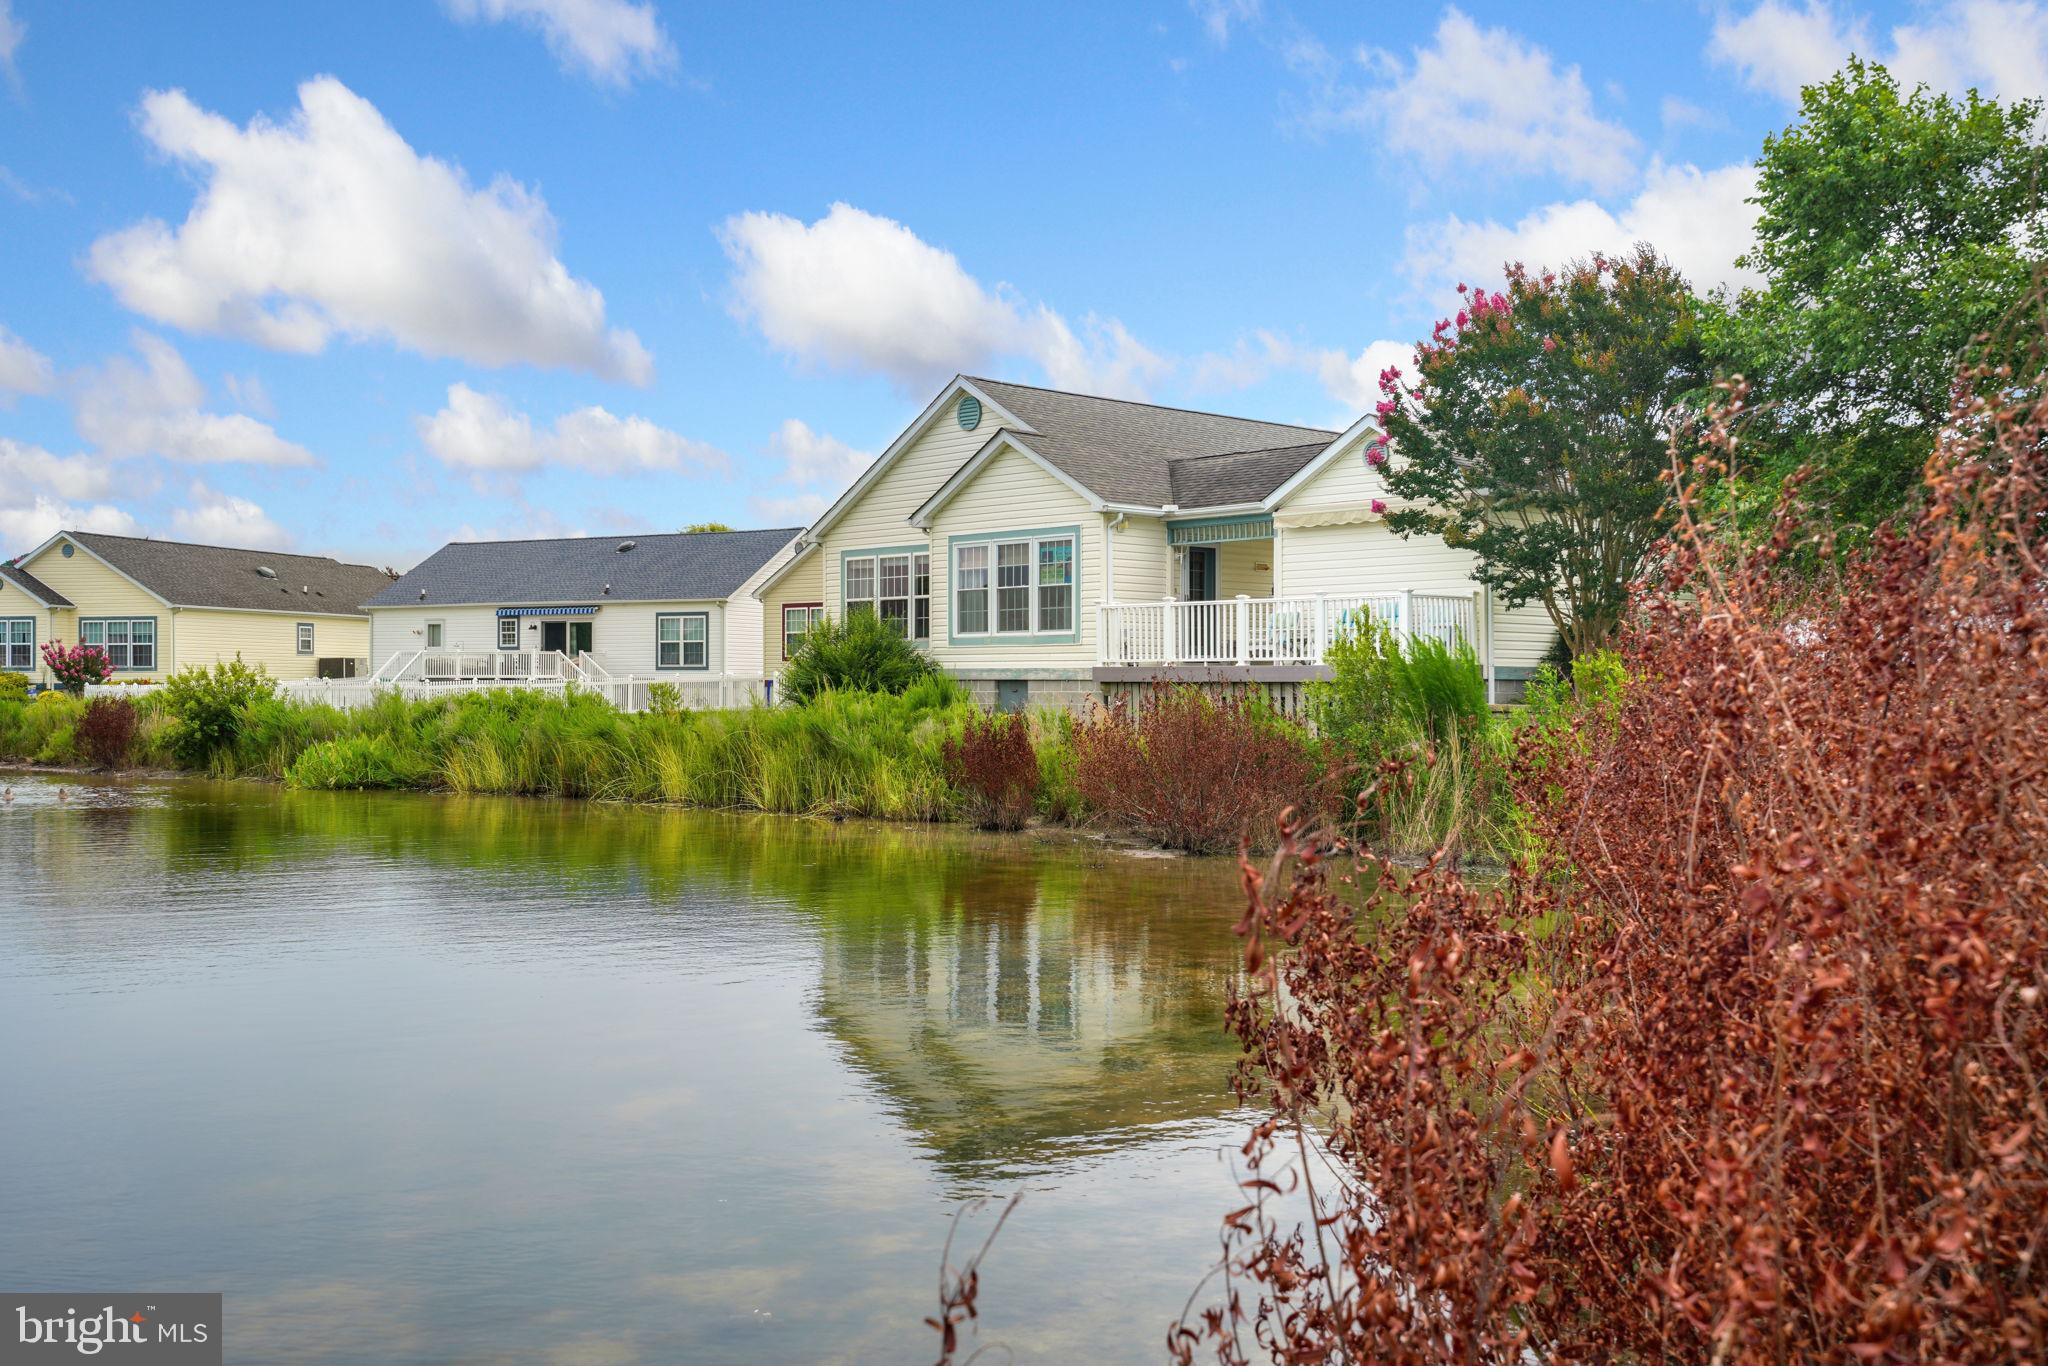 Welcome to this Fabulous Home is Bay Vista of Mystic Harbour. This Coastal Style home offers so much